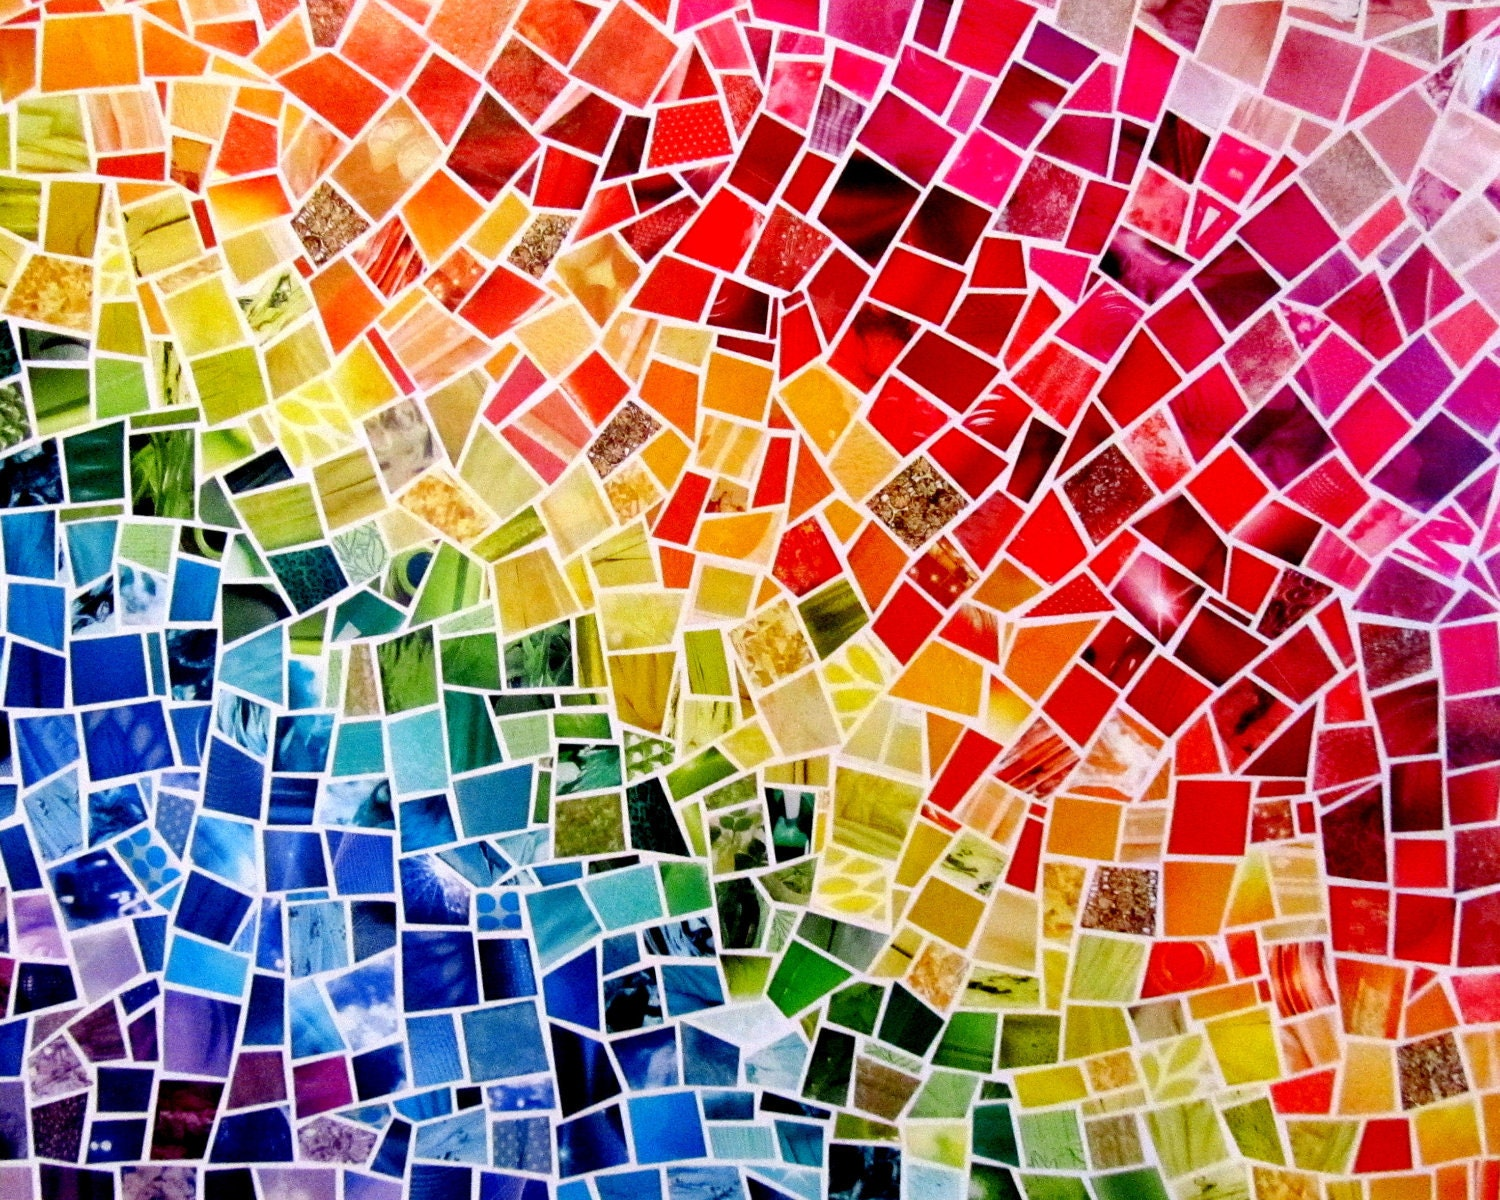 Paint Sample Mosaic Art